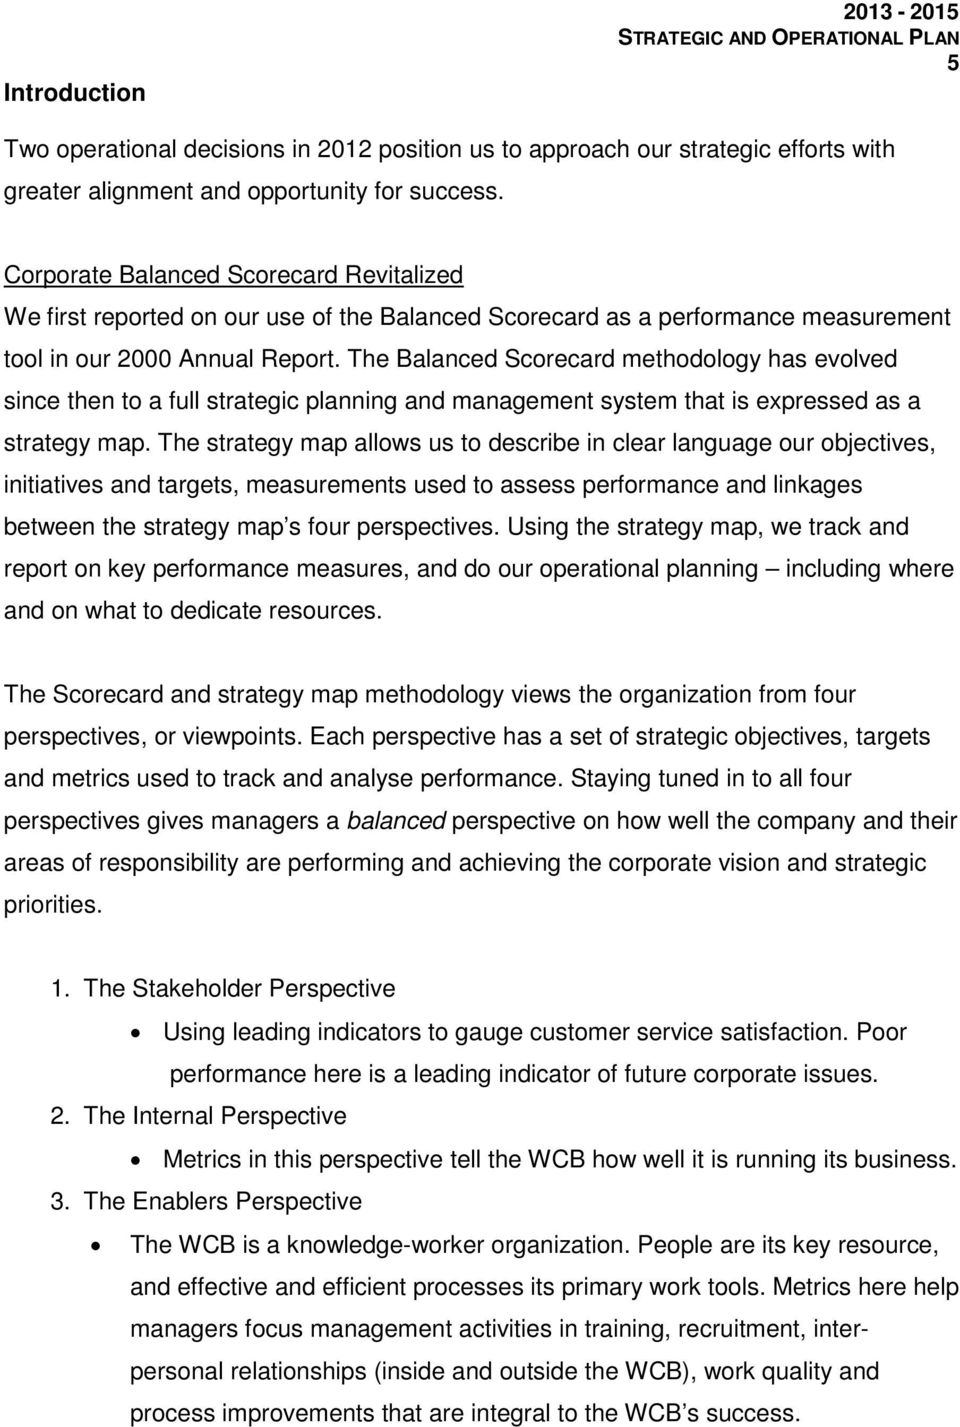 The Balanced Scorecard methodology has evolved since then to a full strategic planning and management system that is expressed as a strategy map.